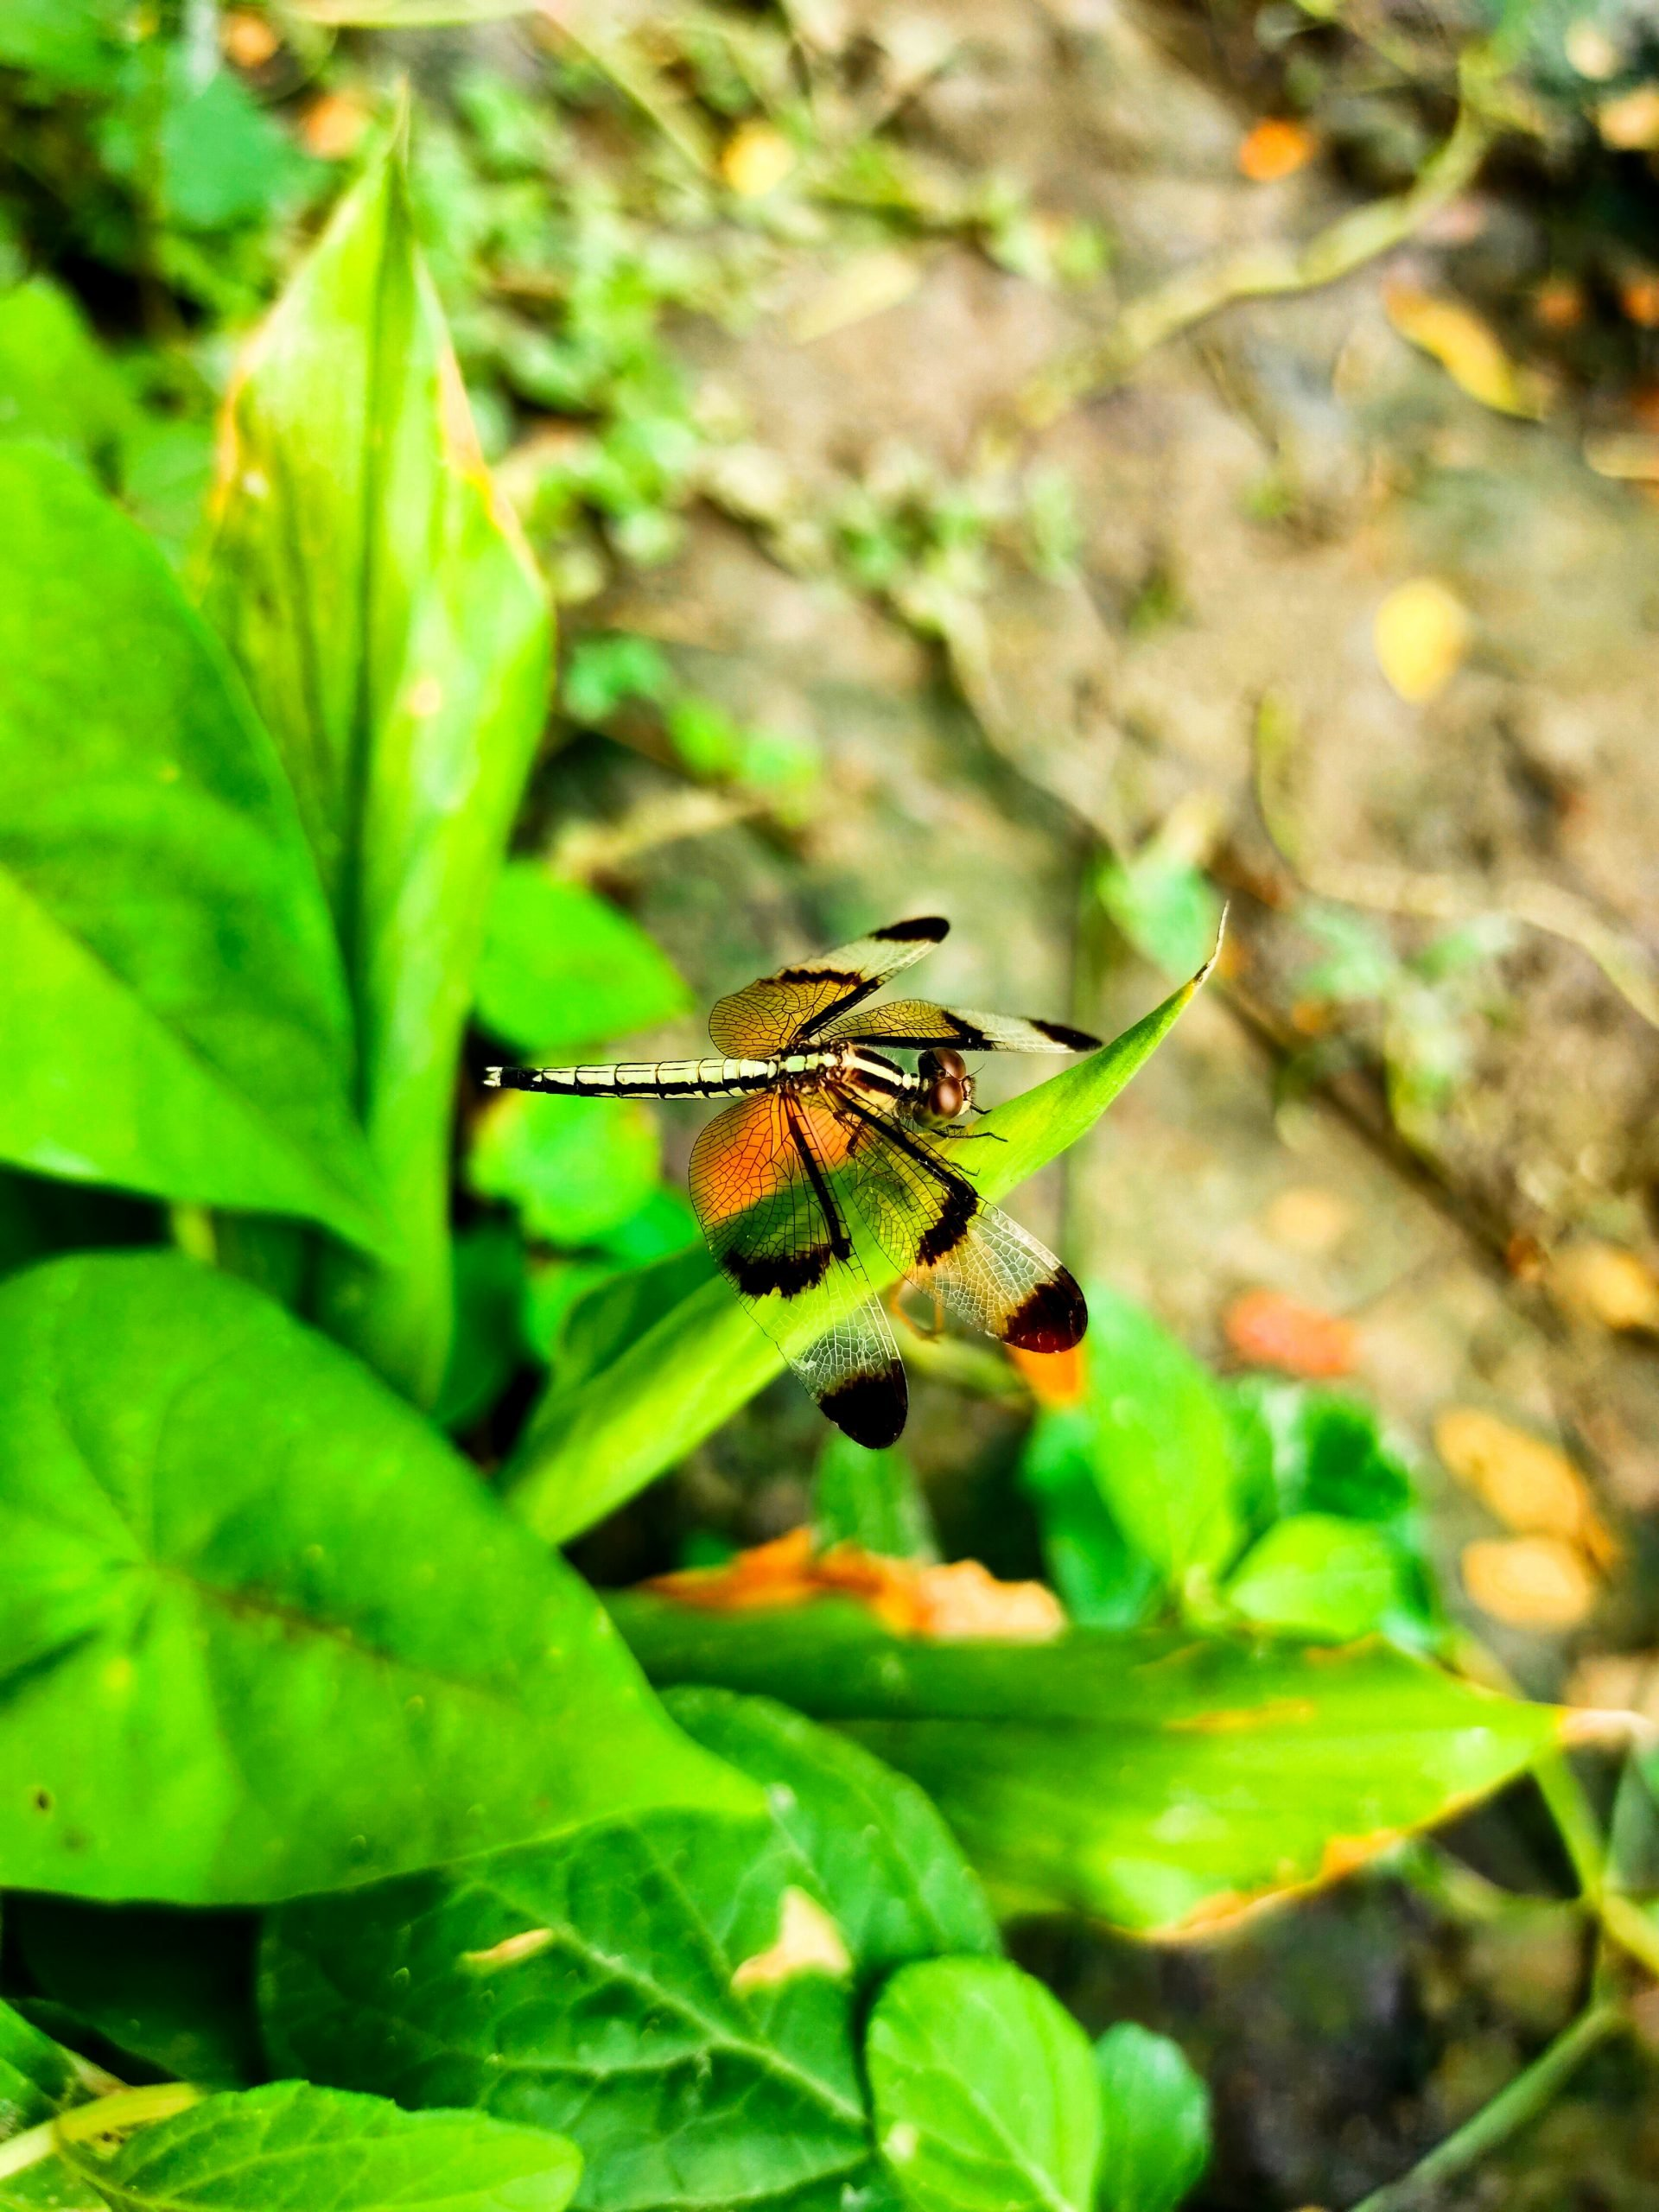 A Beautiful Dragonfly